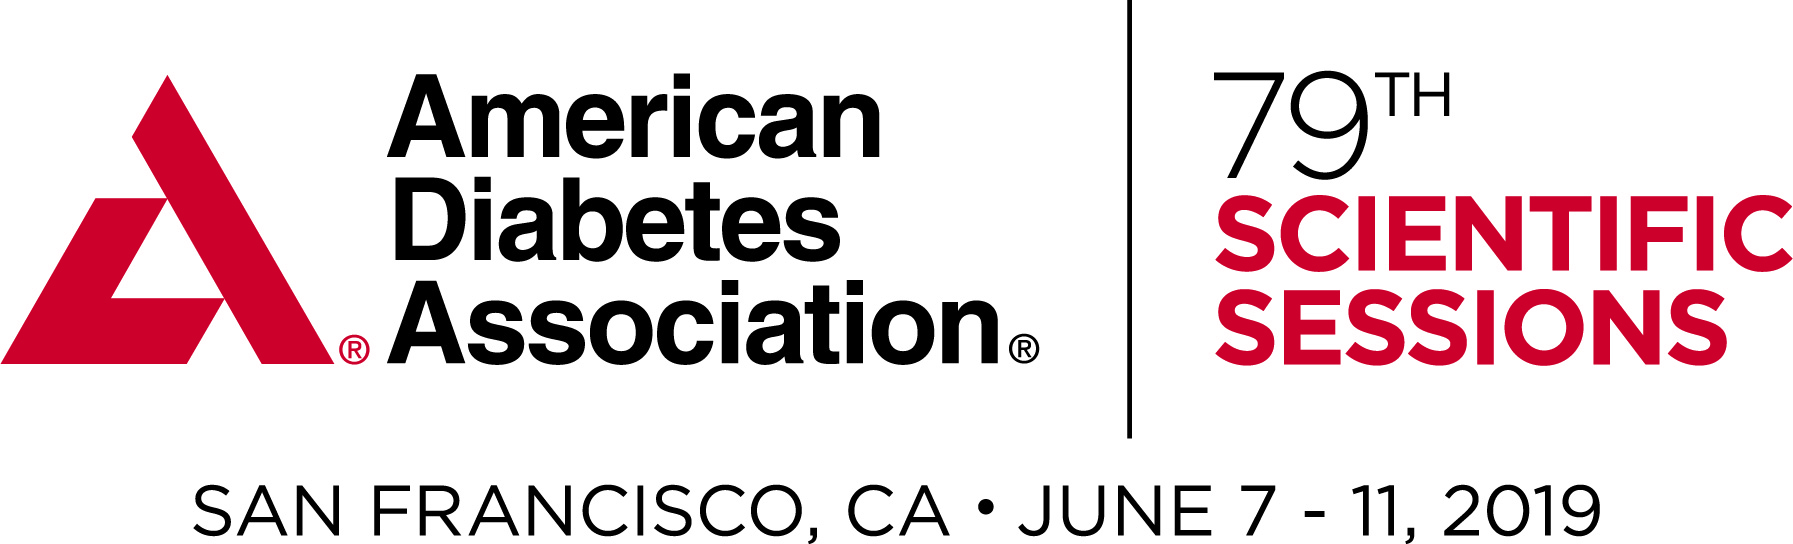 American Diabetes Association 78th Scientific Sessions